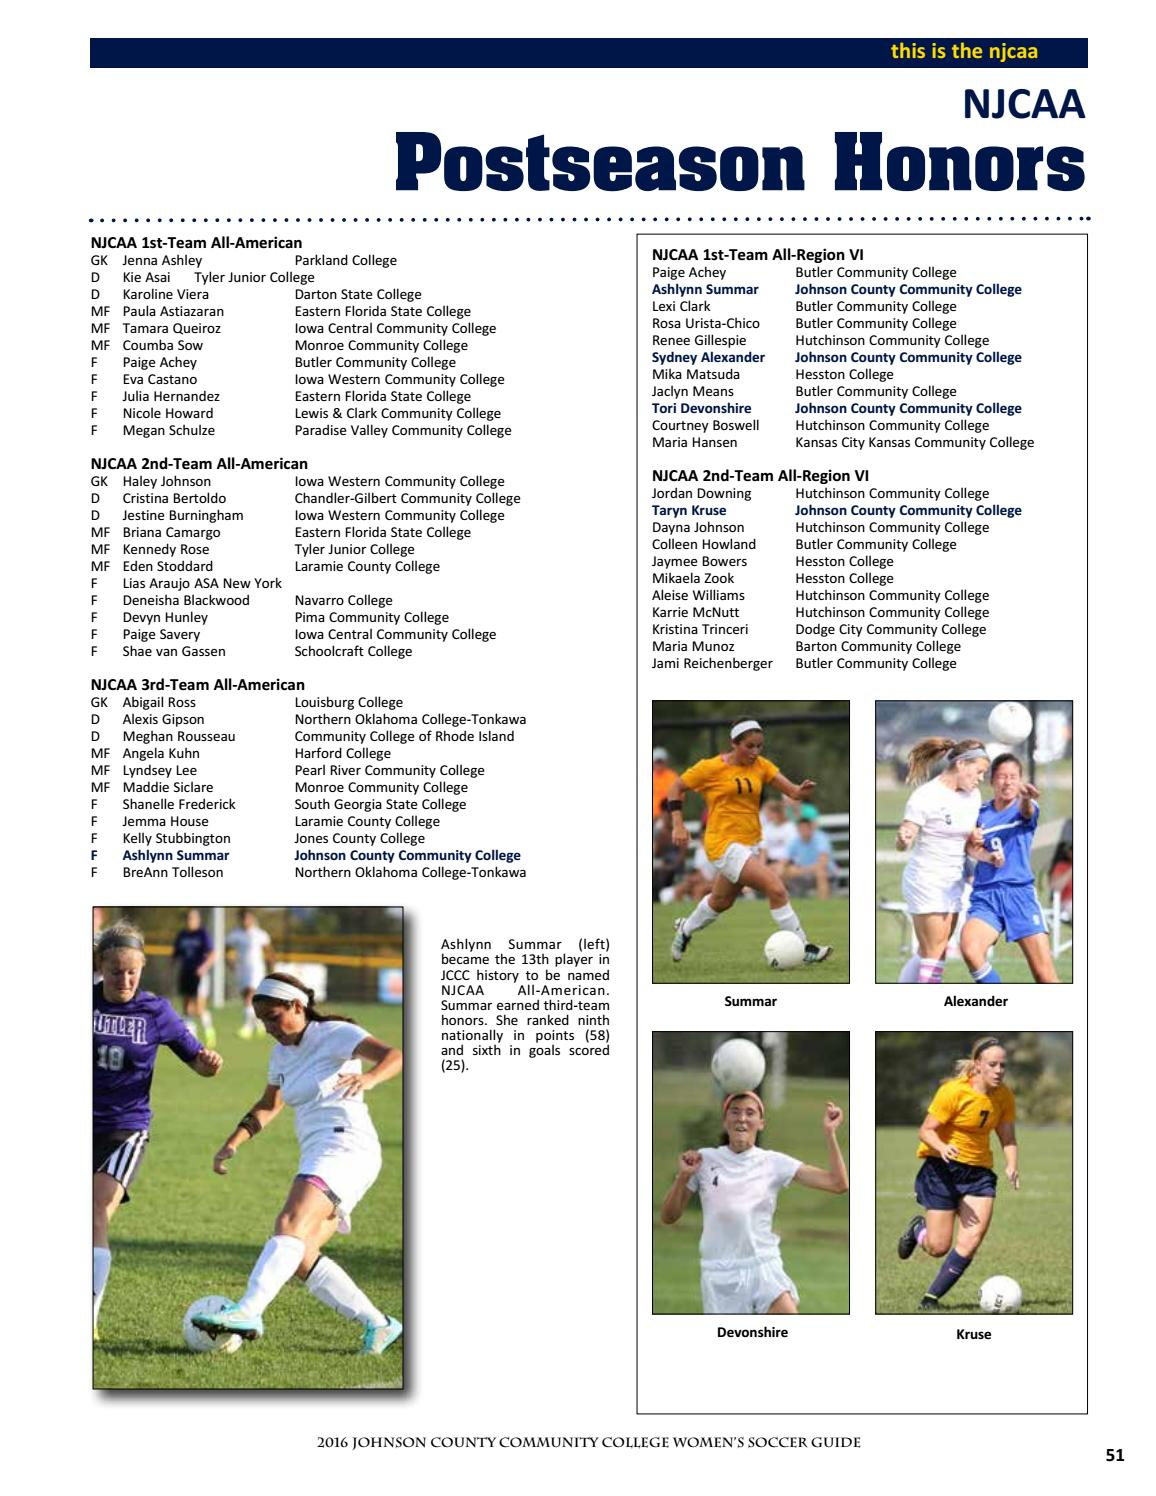 2016 JCCC Women's Soccer Guide by Chris Gray - issuu